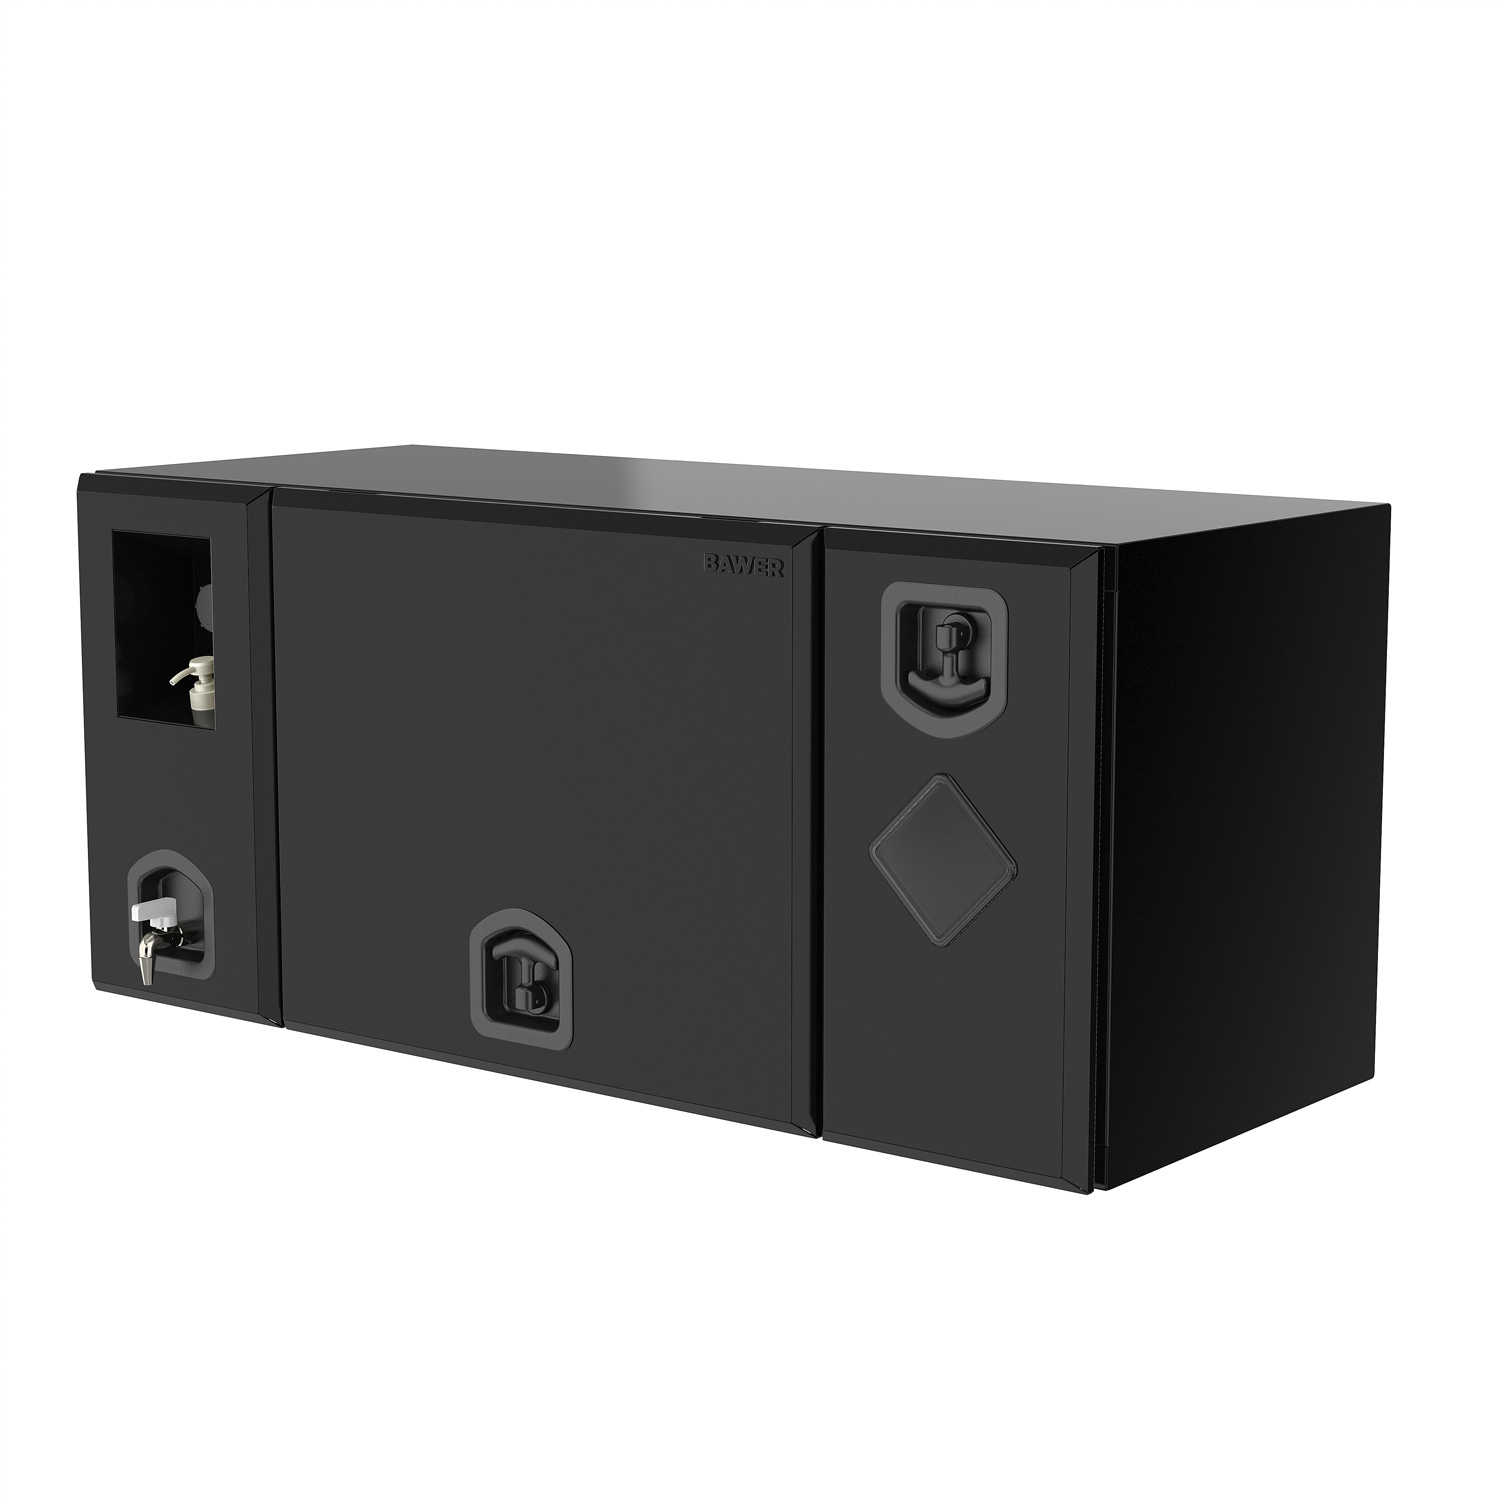 Multibox Toolboxes